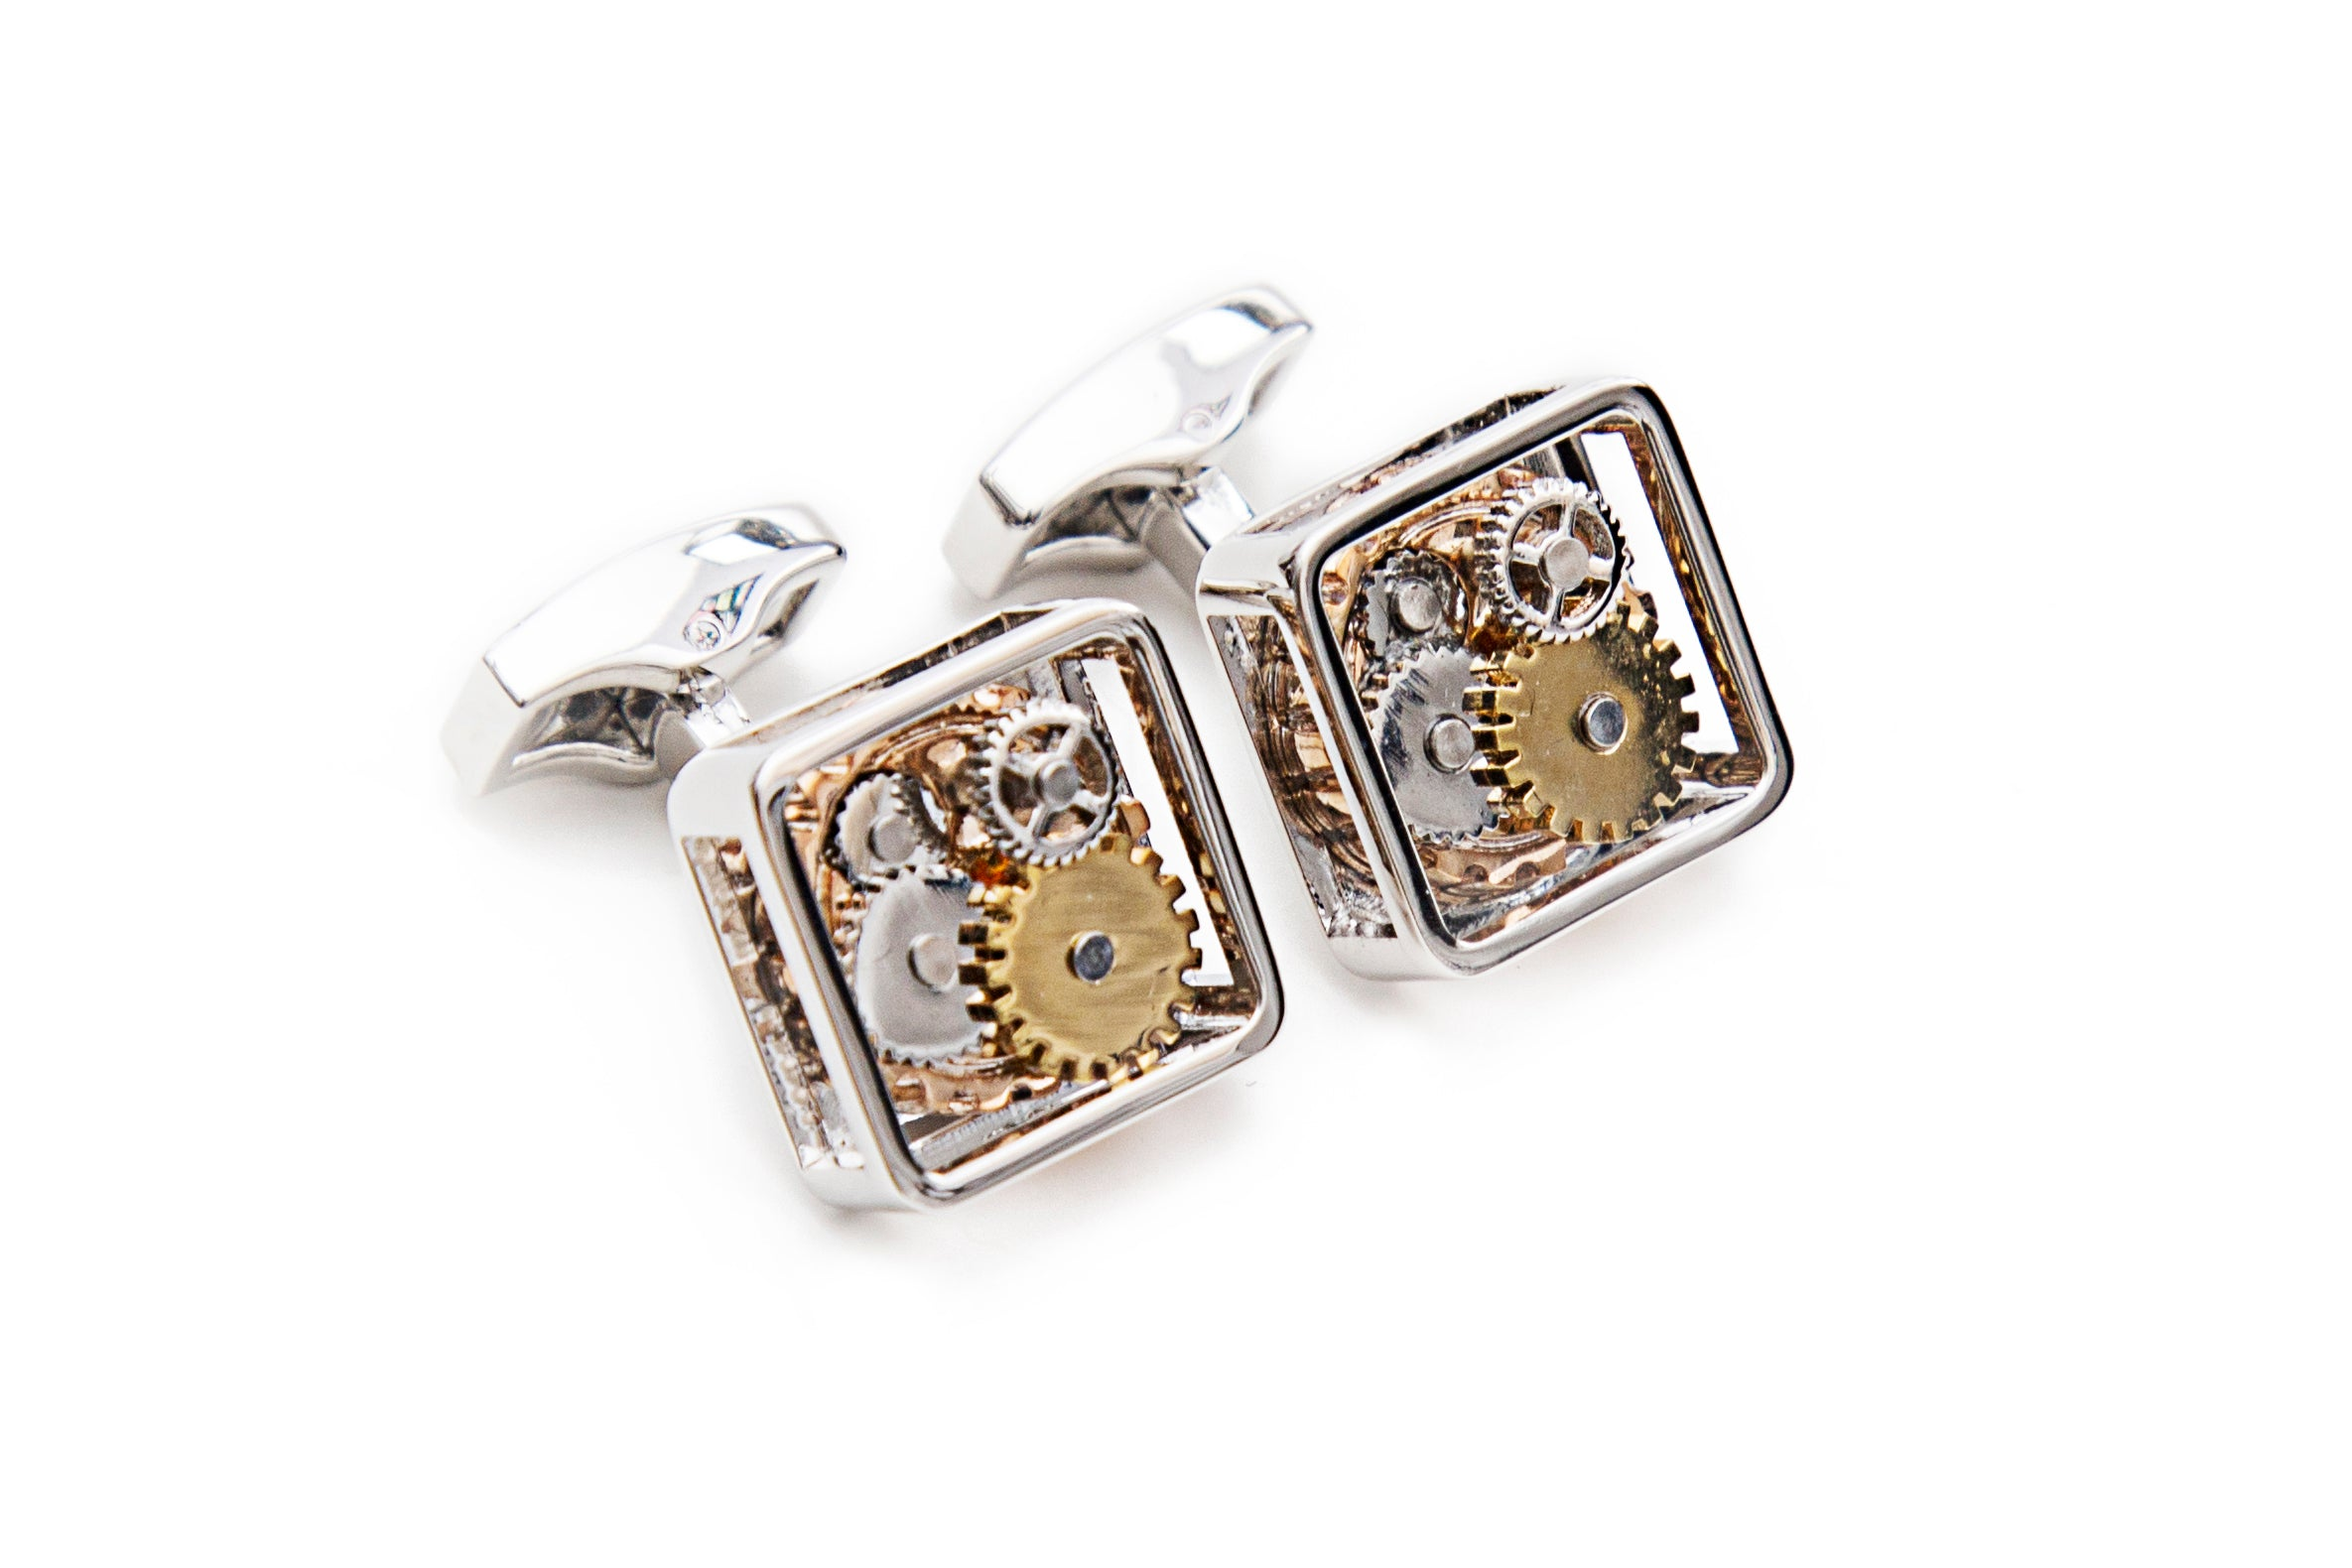 Silver Square Gear Cuff Links